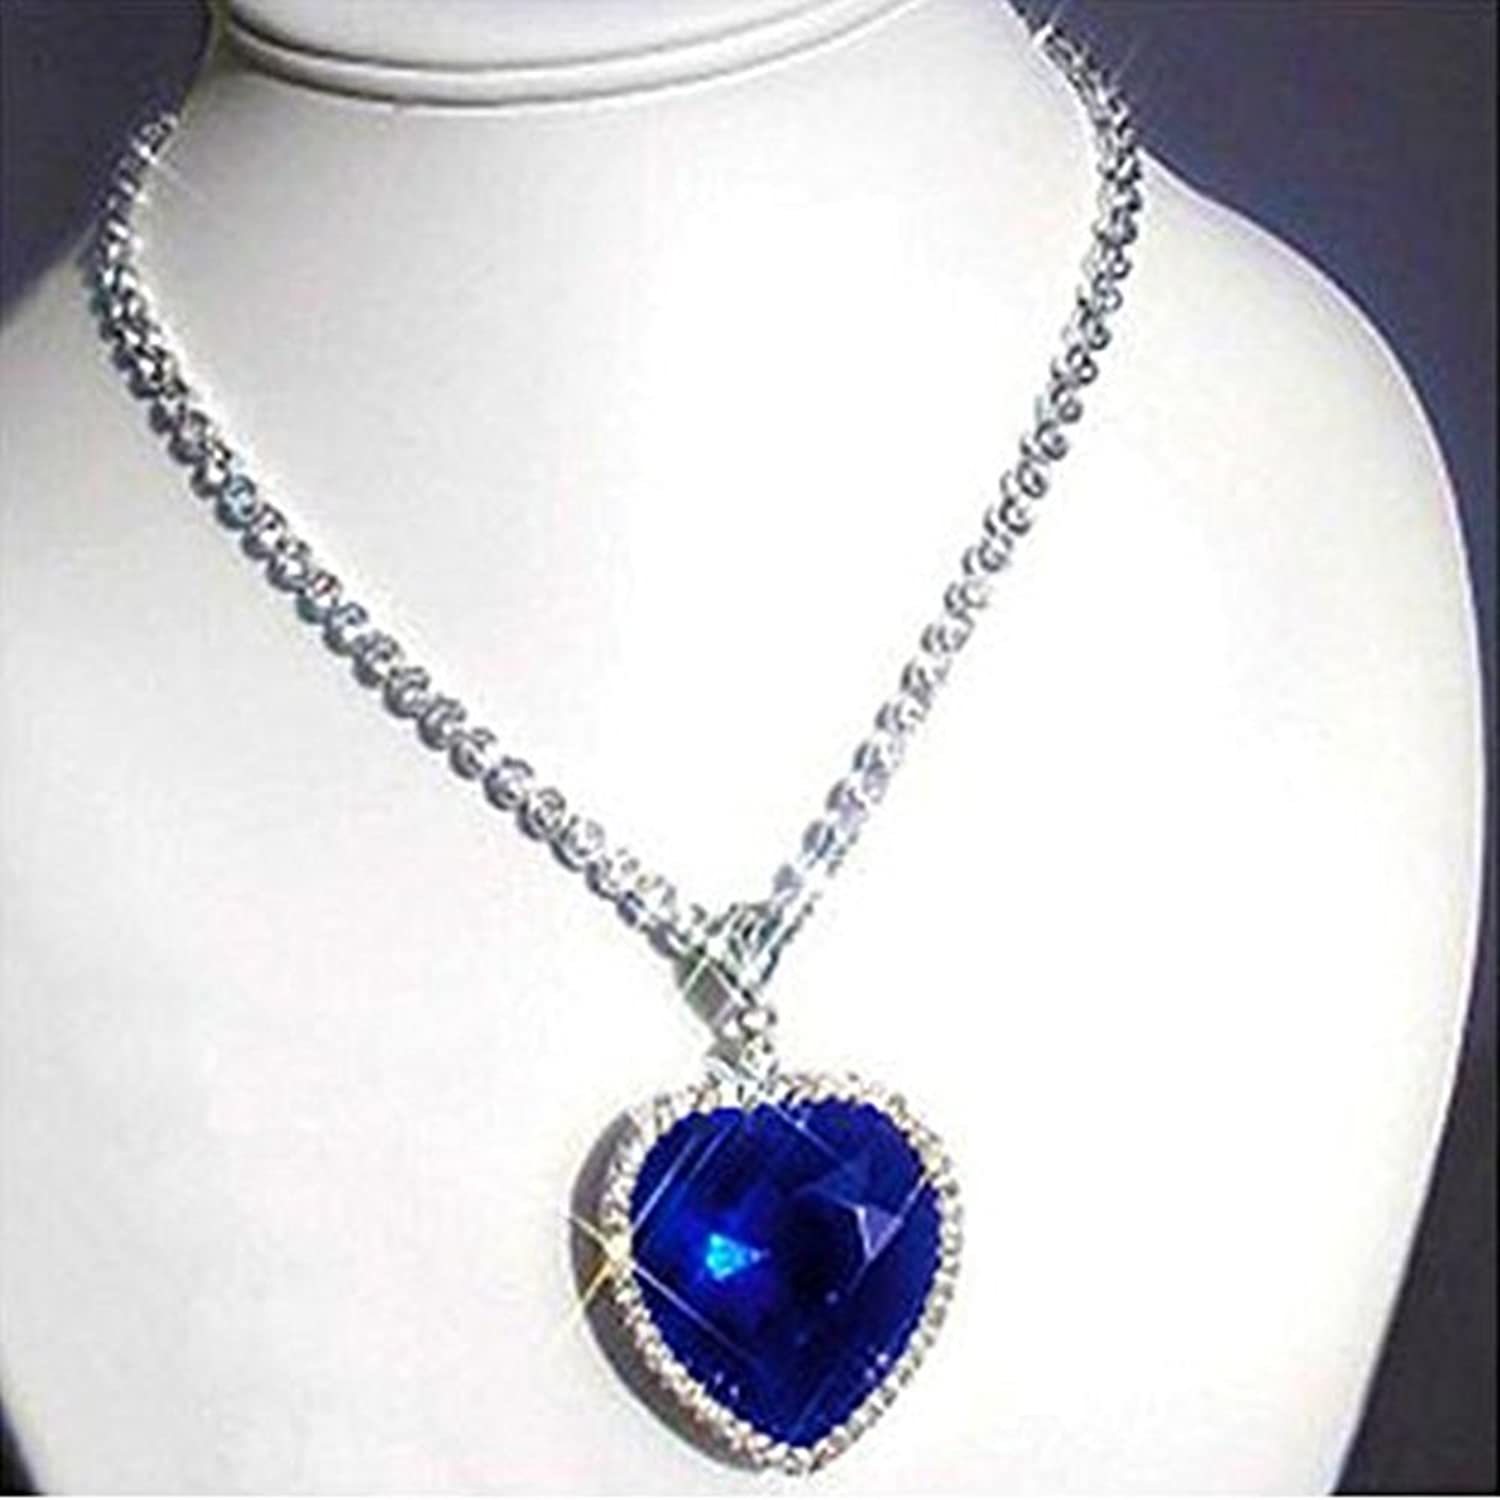 birks e pendant ros en du roseedumatin web necklace matin rosee diamonds sapphire with